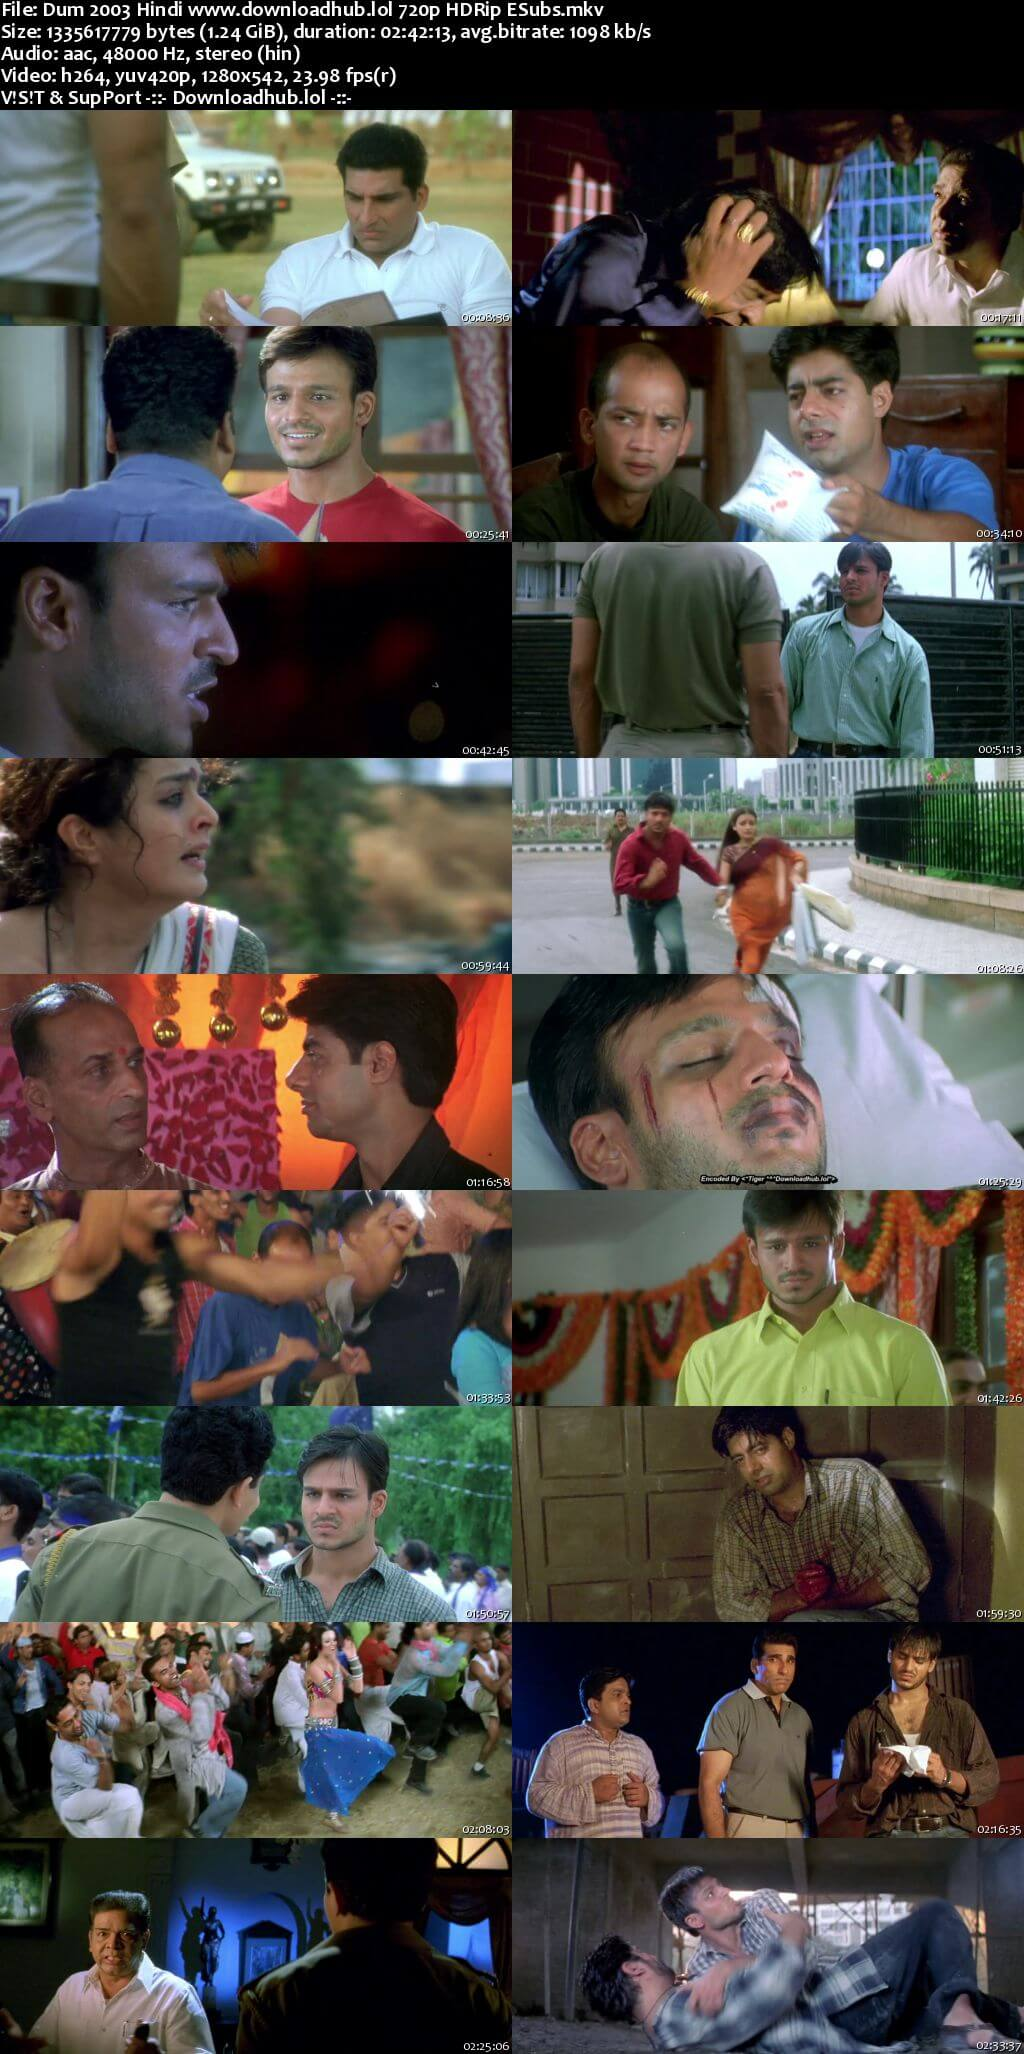 Dum 2003 Hindi 720p HDRip ESubs